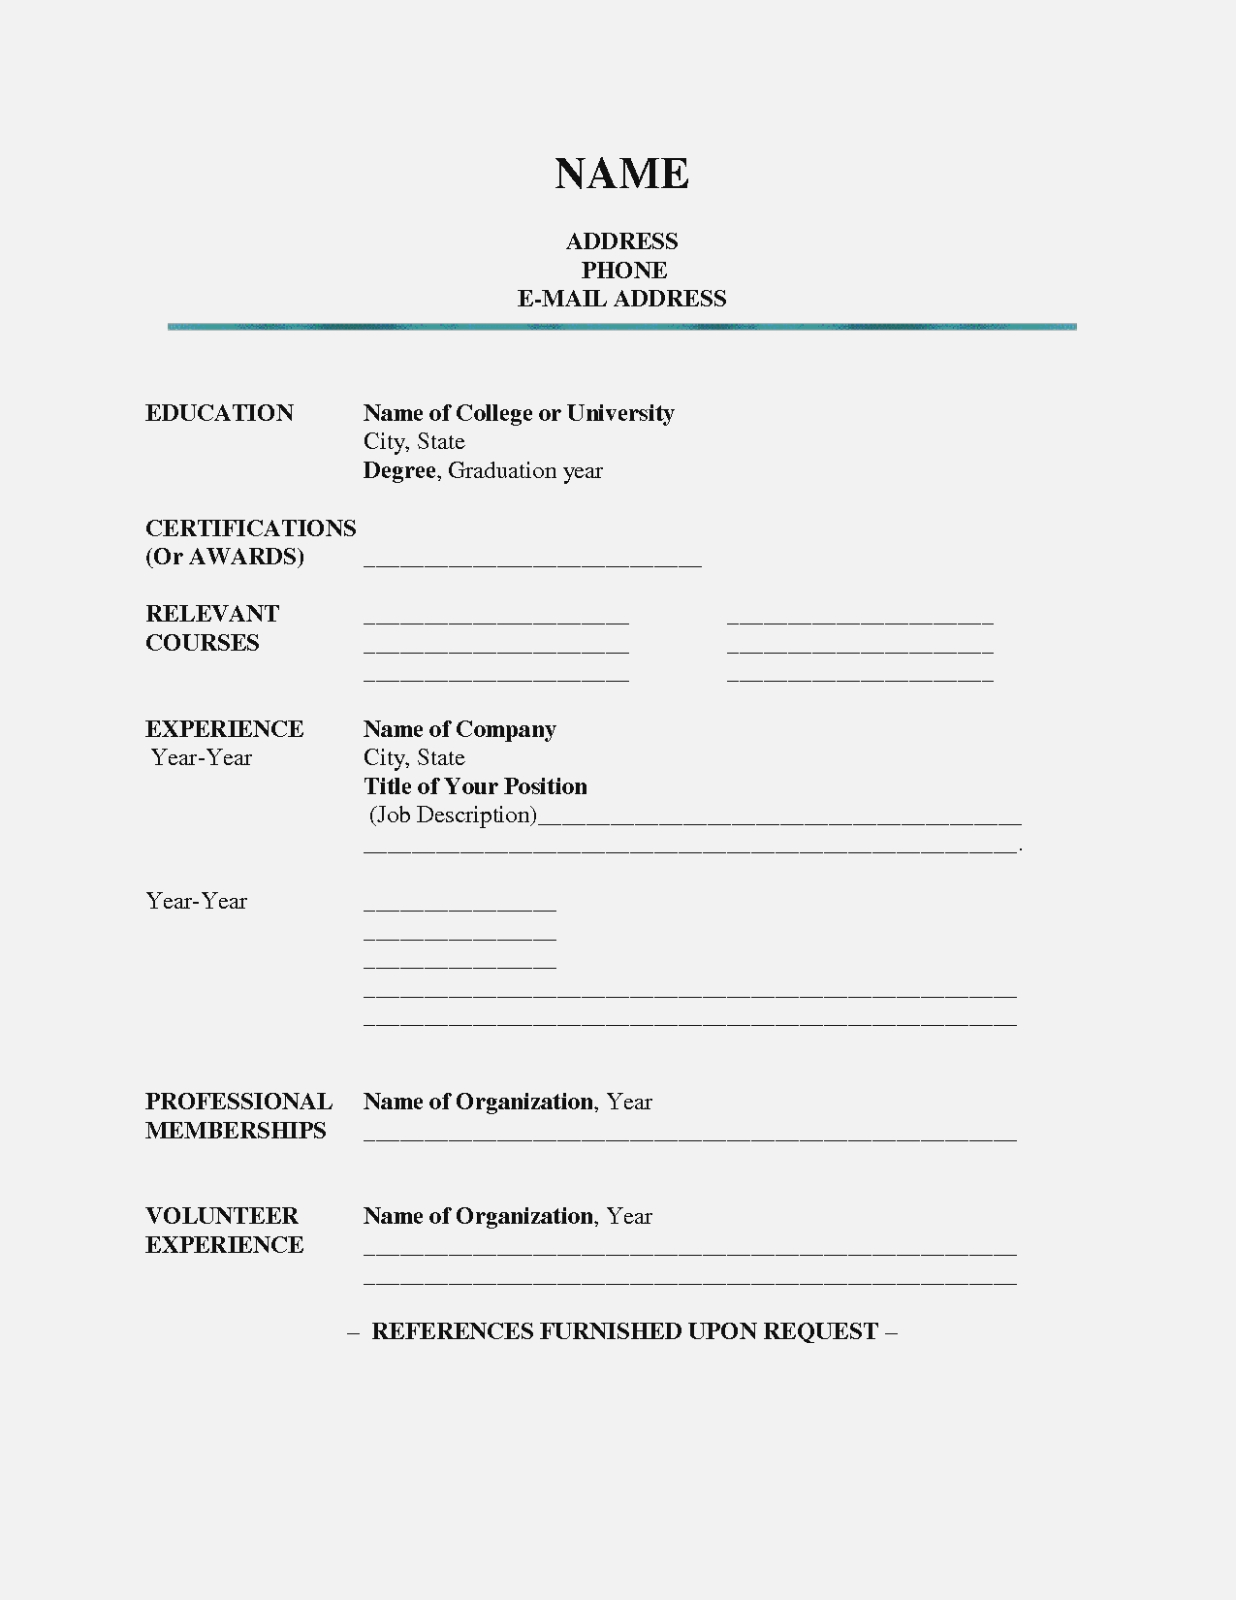 Five Moments To Remember | Invoice And Resume Template Ideas - Free Printable Resume Templates